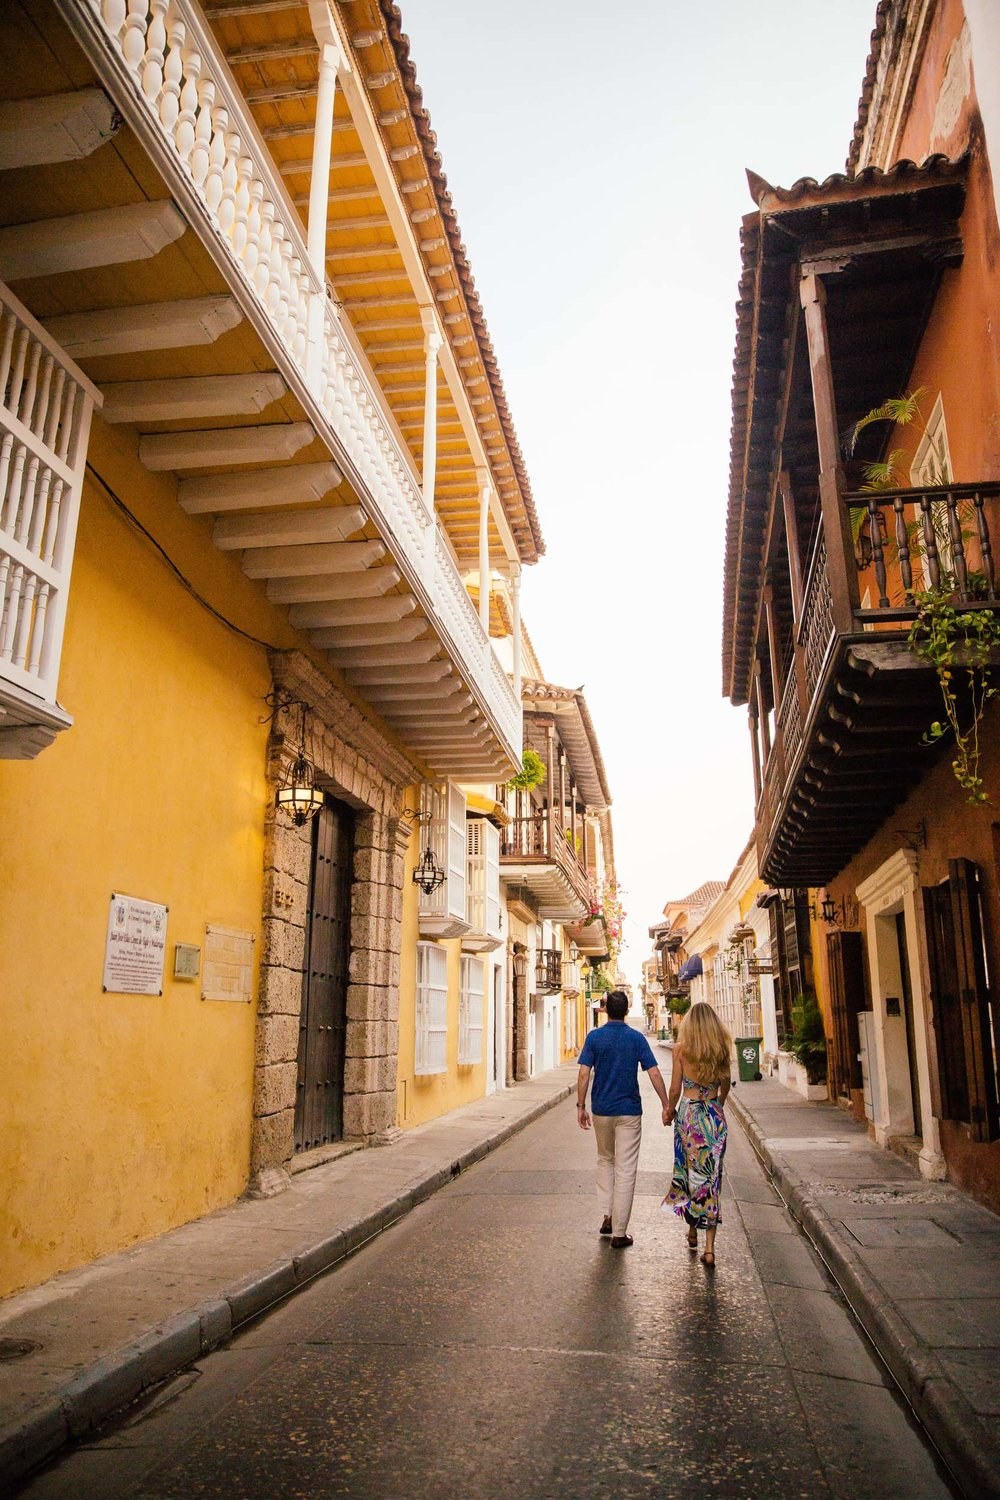 Flytographer: Juan A. in Cartagena